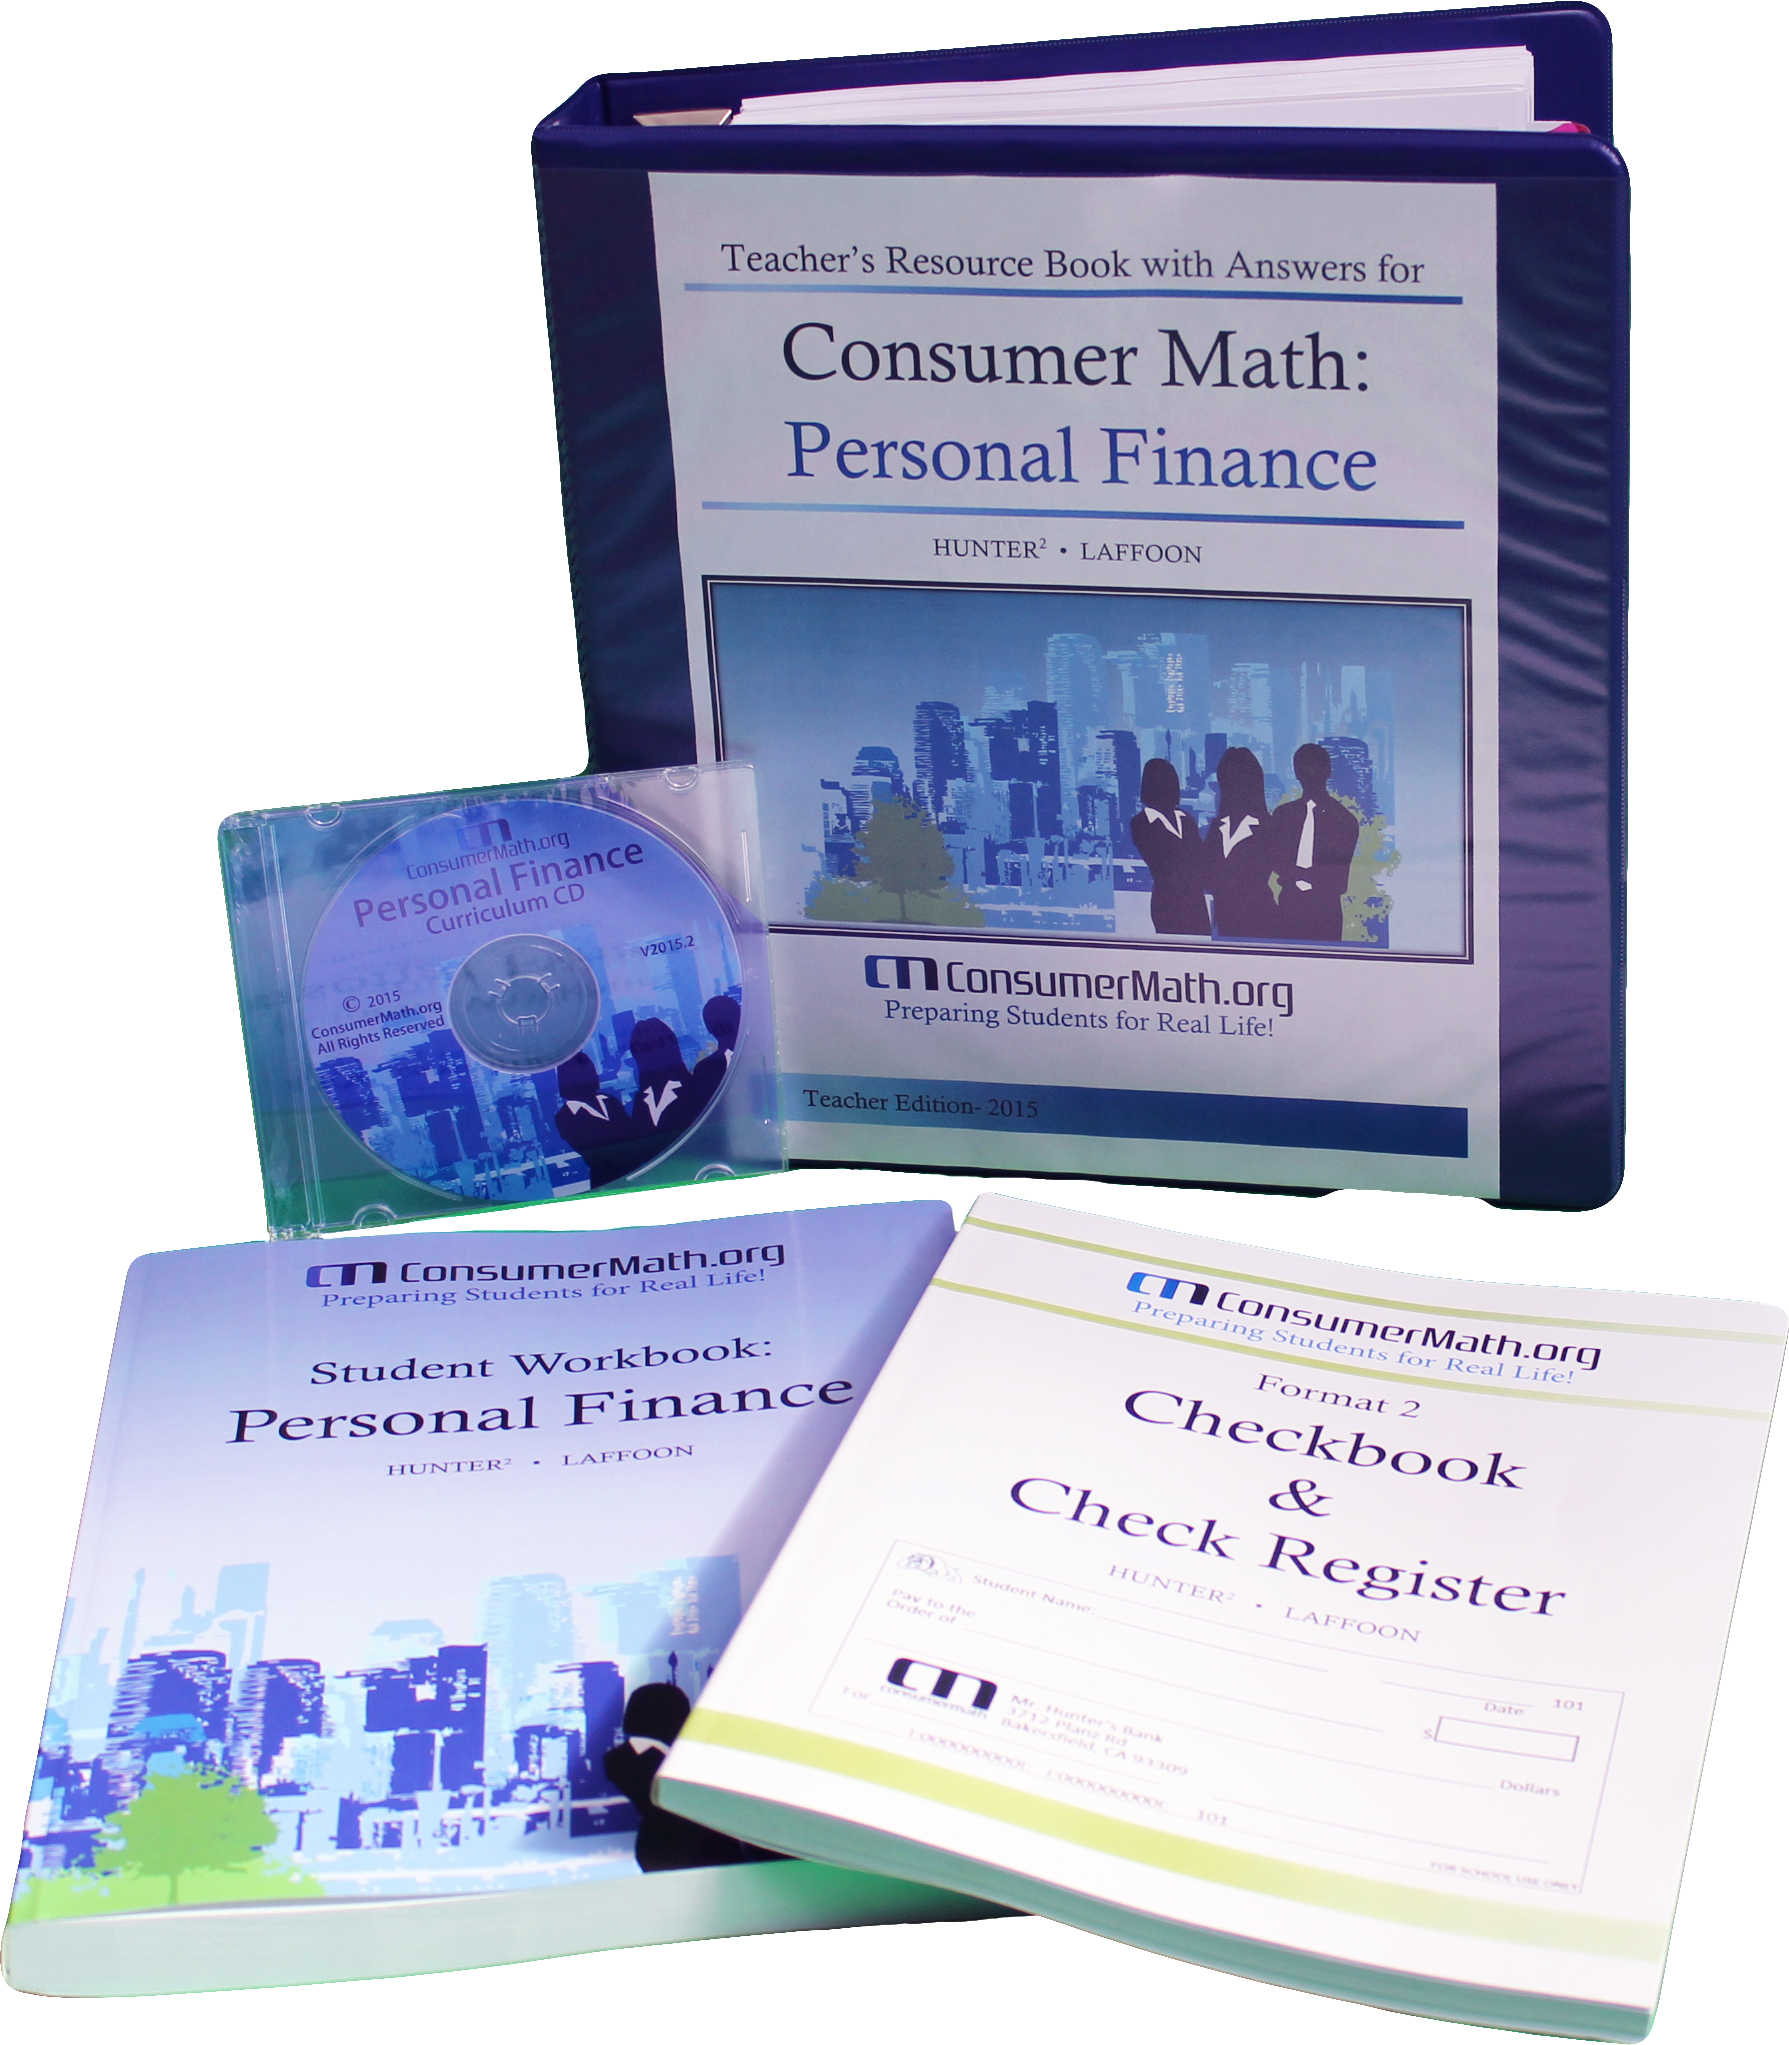 Personal finance software stock options